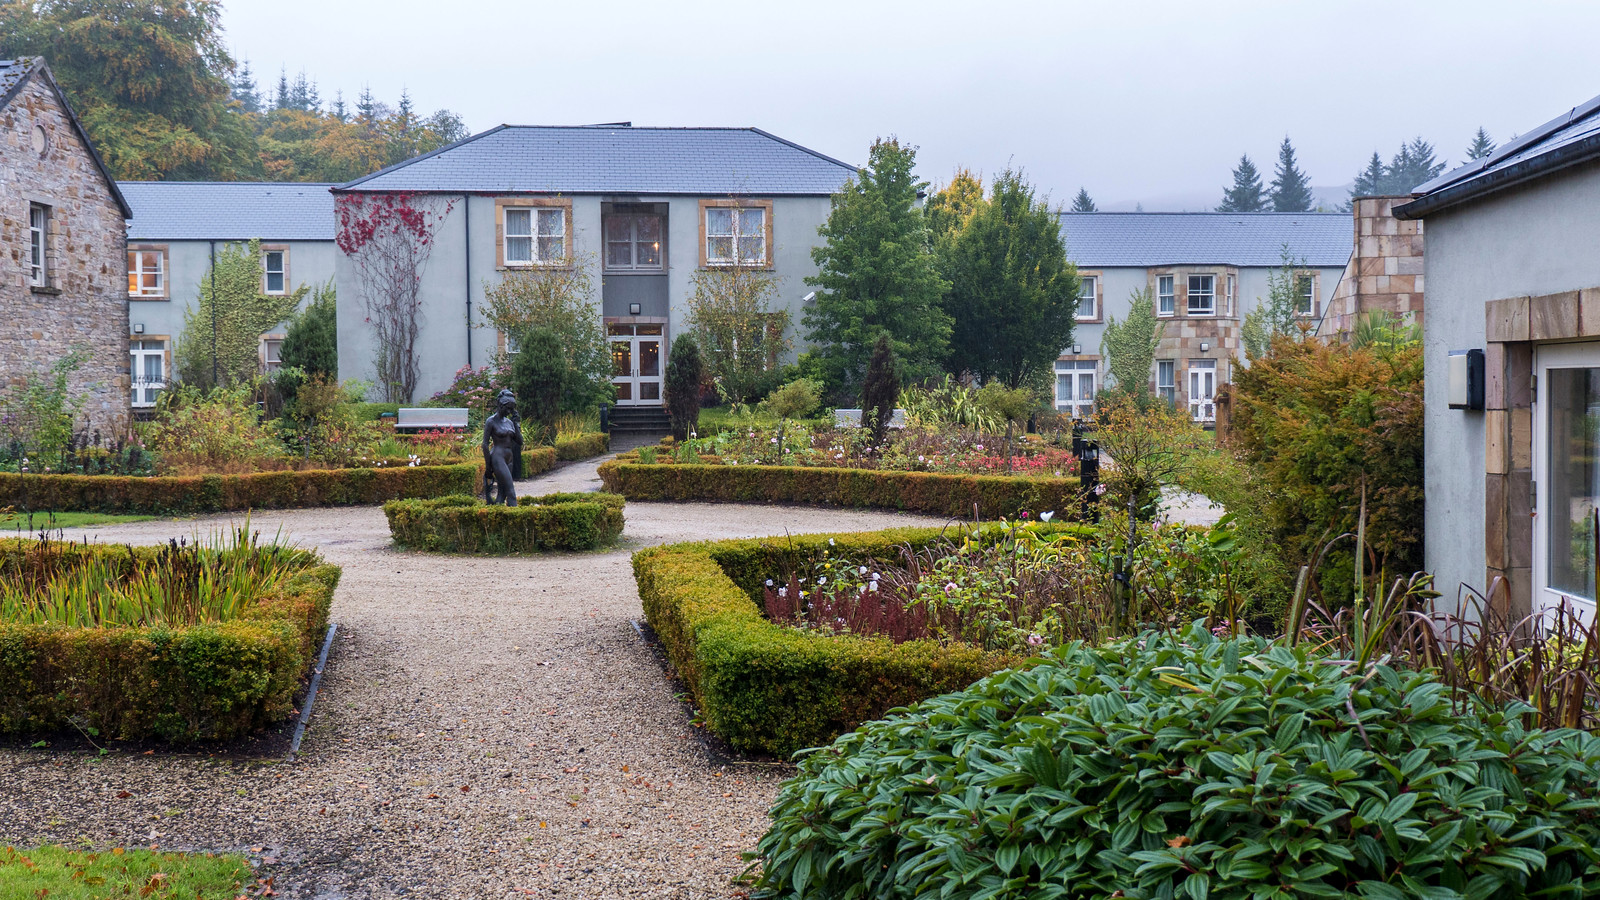 Lough Eske Castle: A Fairy Tale Hotel in Donegal, Ireland